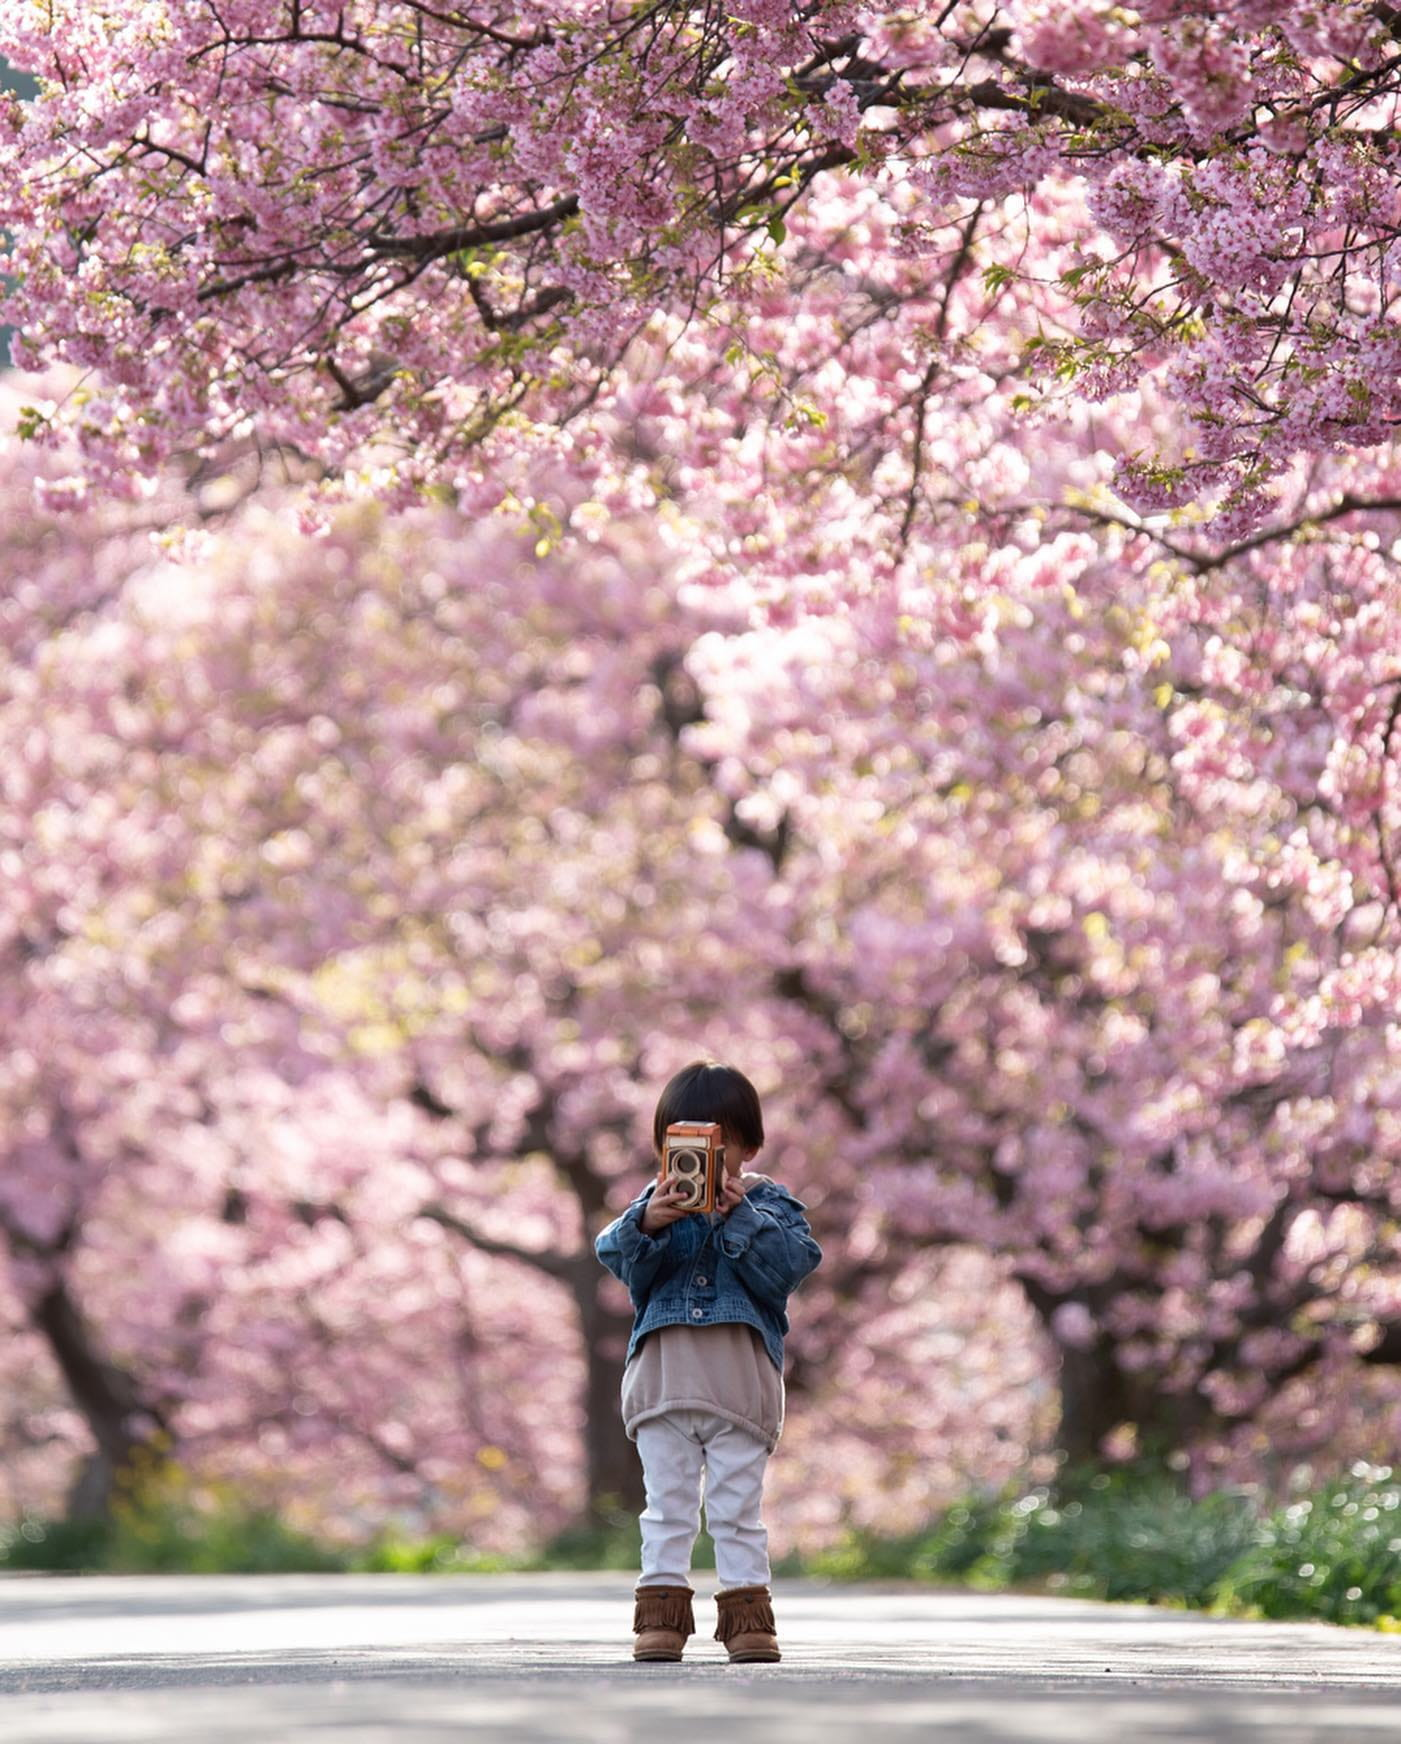 Child with Camera in Front of Cherry Blossoms